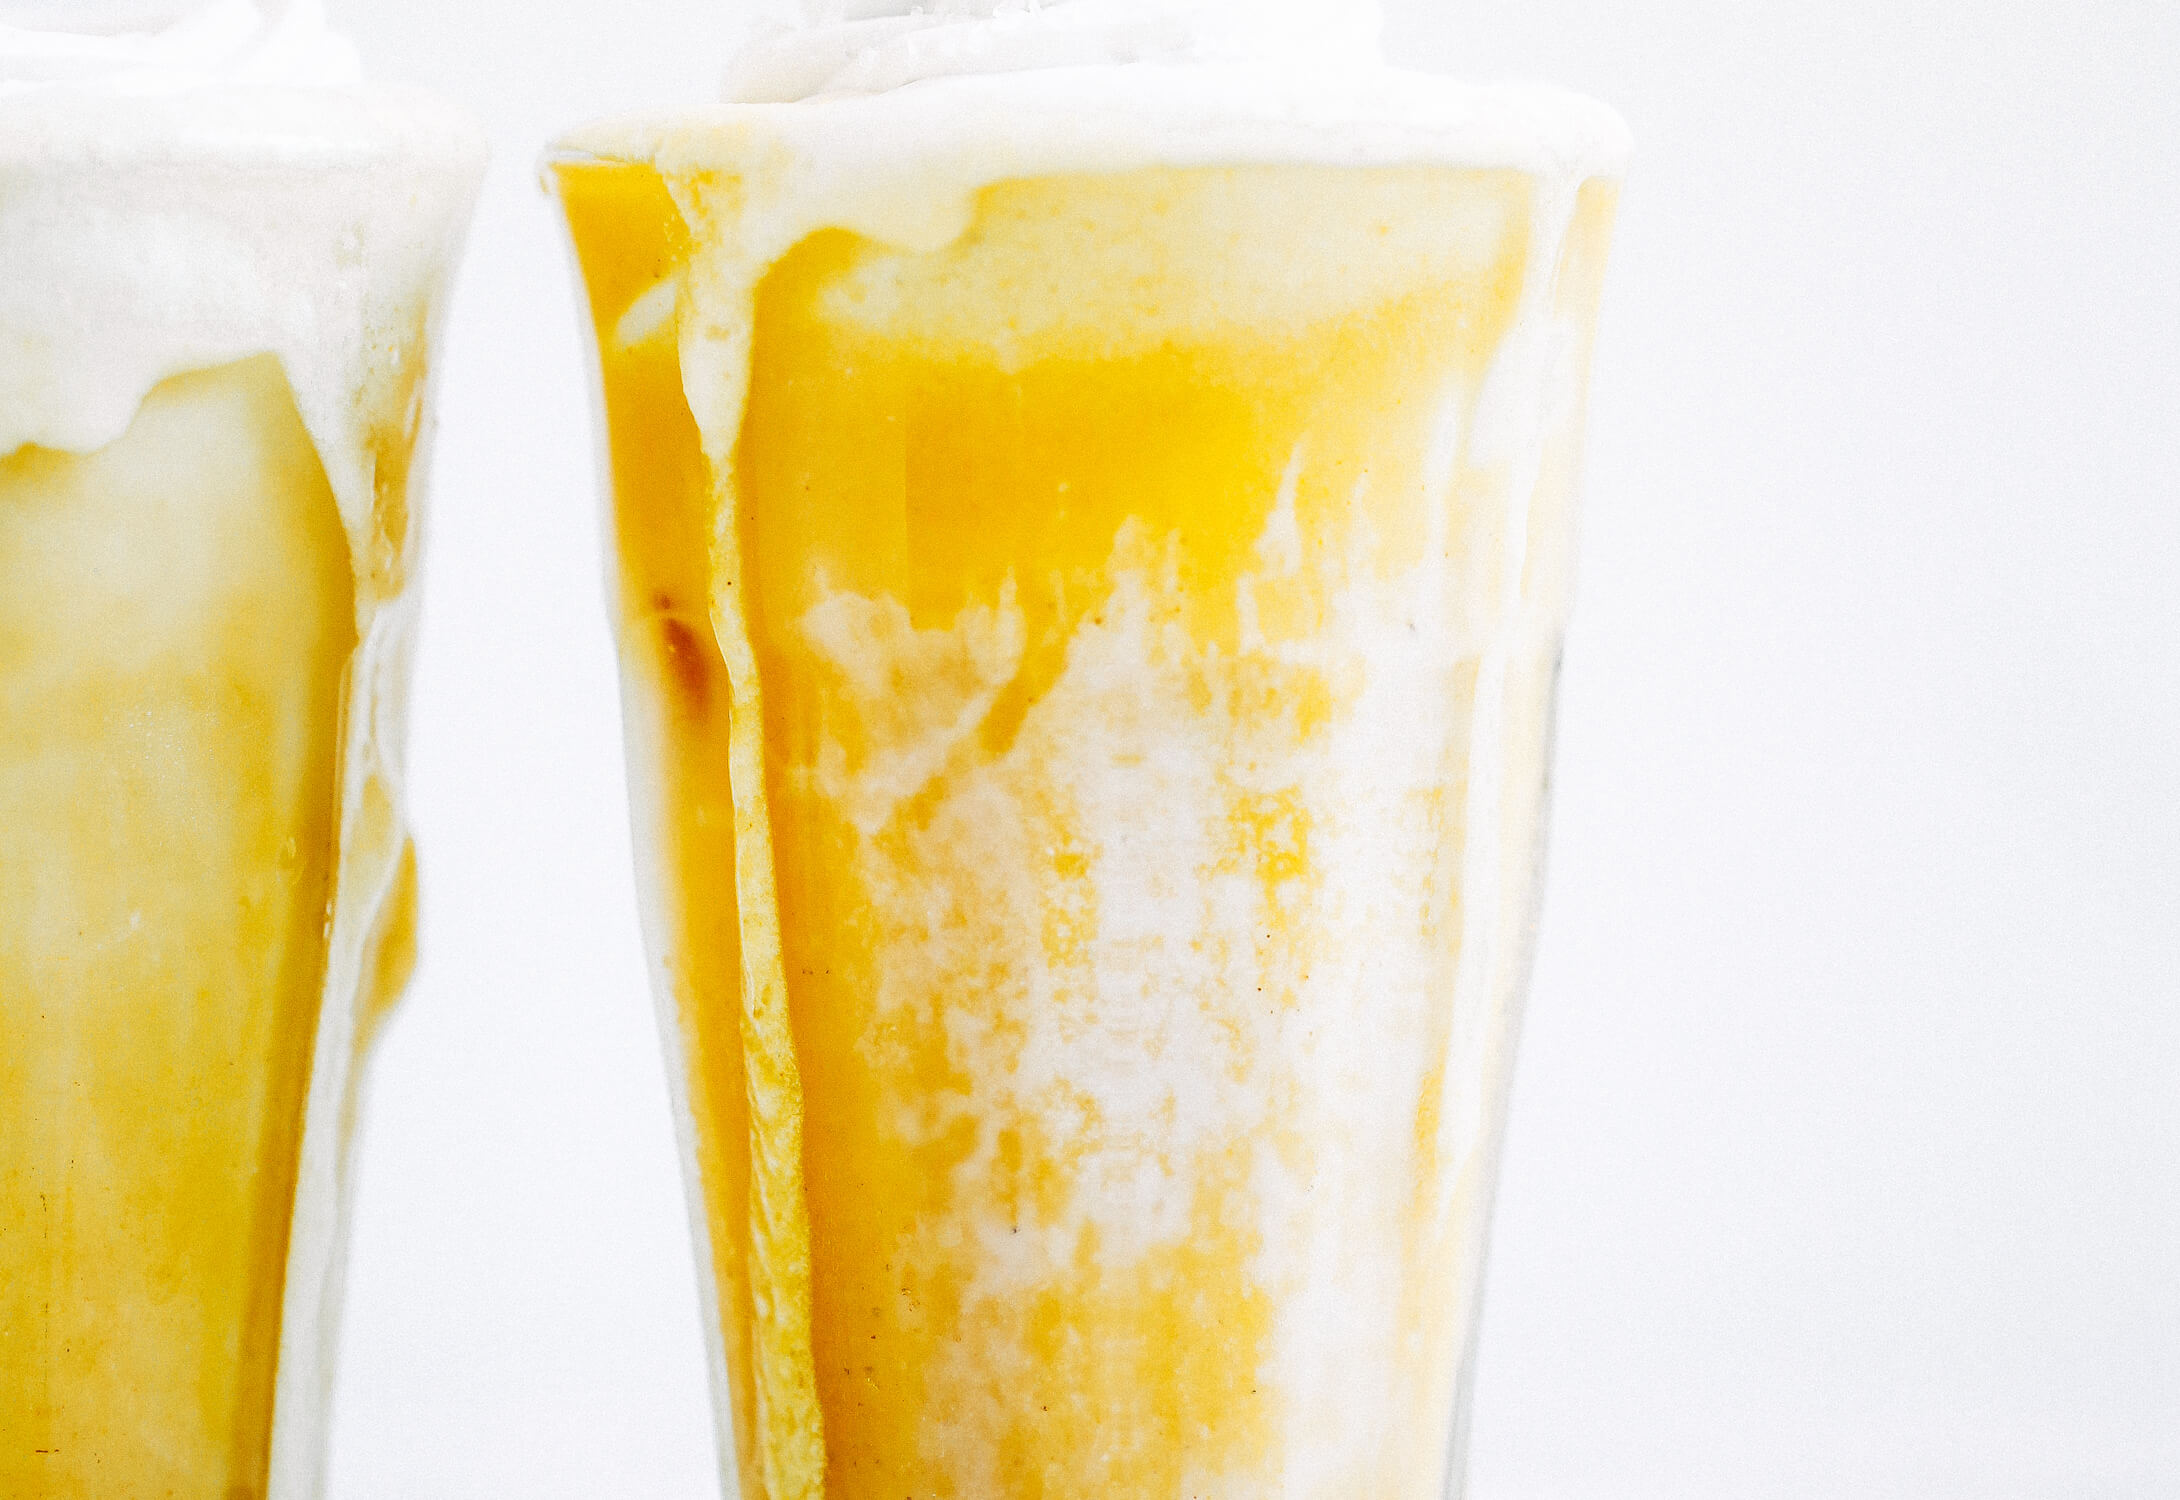 Top on my paleo food list: golden iced turmeric lattes. Tastes like liquid sunshine! An easy refreshing paleo and whole30 beverage, perfect for summer. #paleo #summer #golden Paleo for beginners. Paleo diet recipes. Paleo breakfast on the go. Easy paleo snacks. Best golden milk latte. Whole30 breakfast recipes. Whole30 rules. Whole30 snacks.